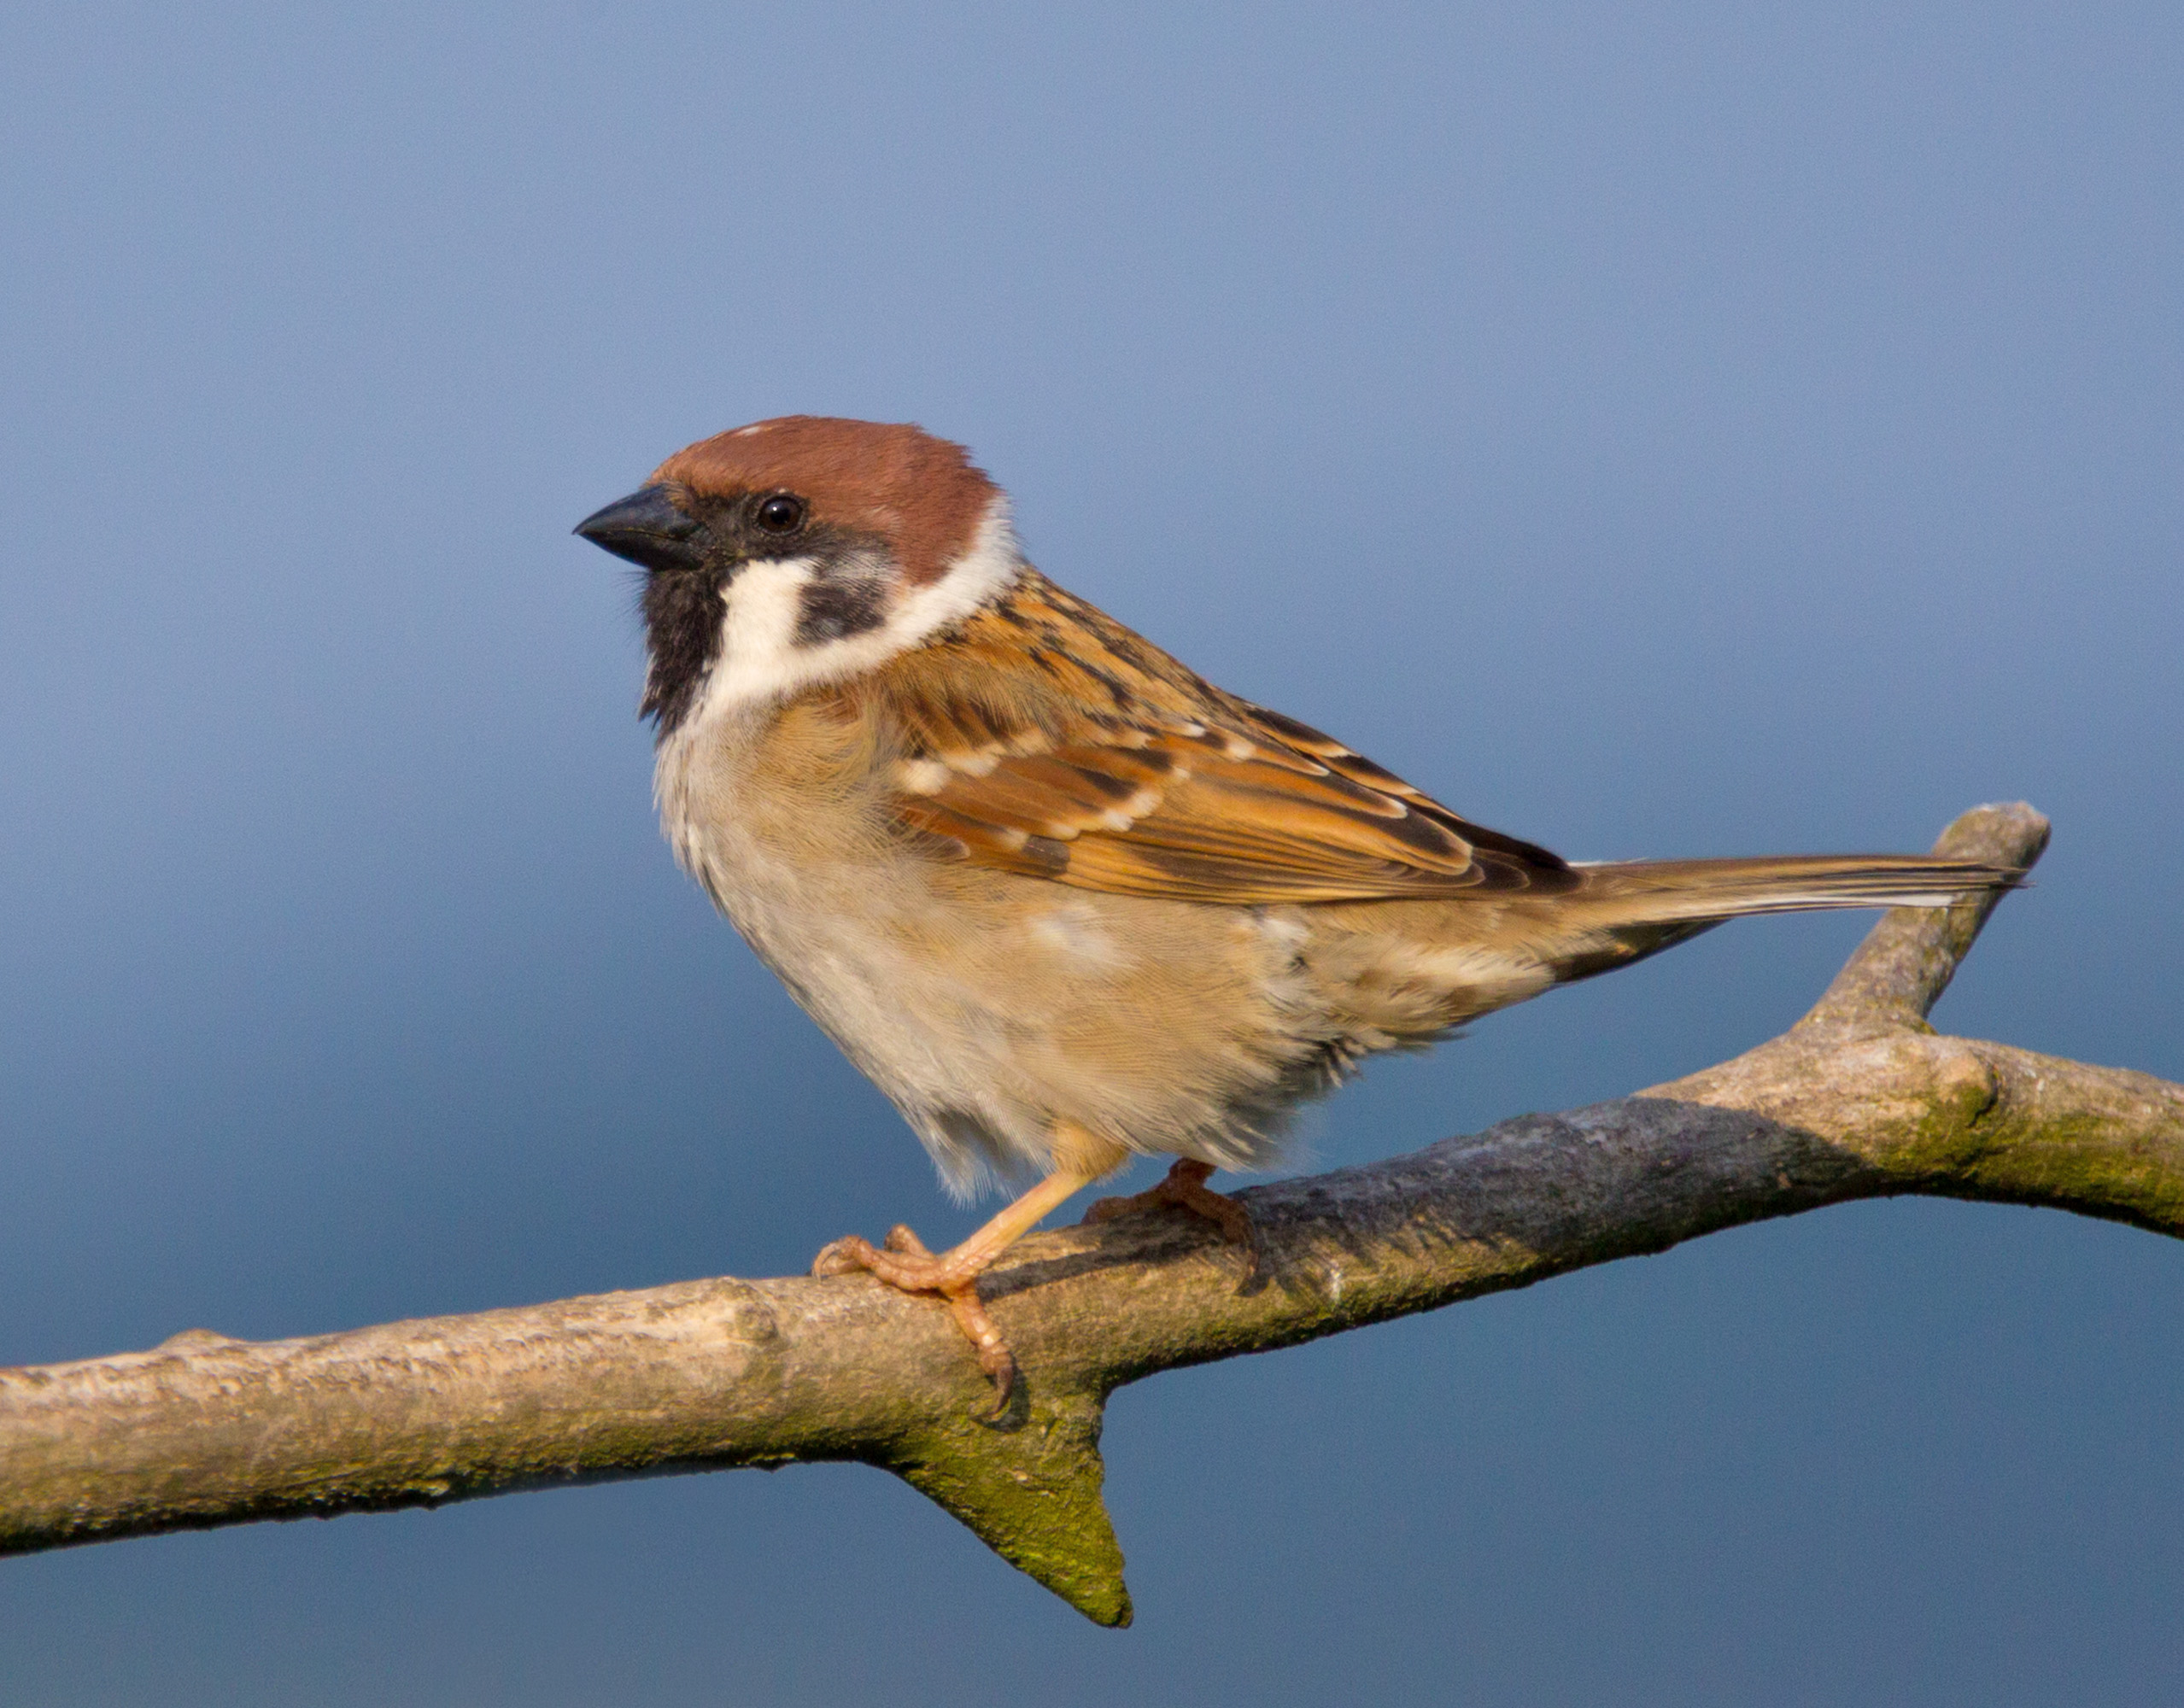 The Eurasian tree sparrow was the most notable target of the campaign. Image from WikiPedia.